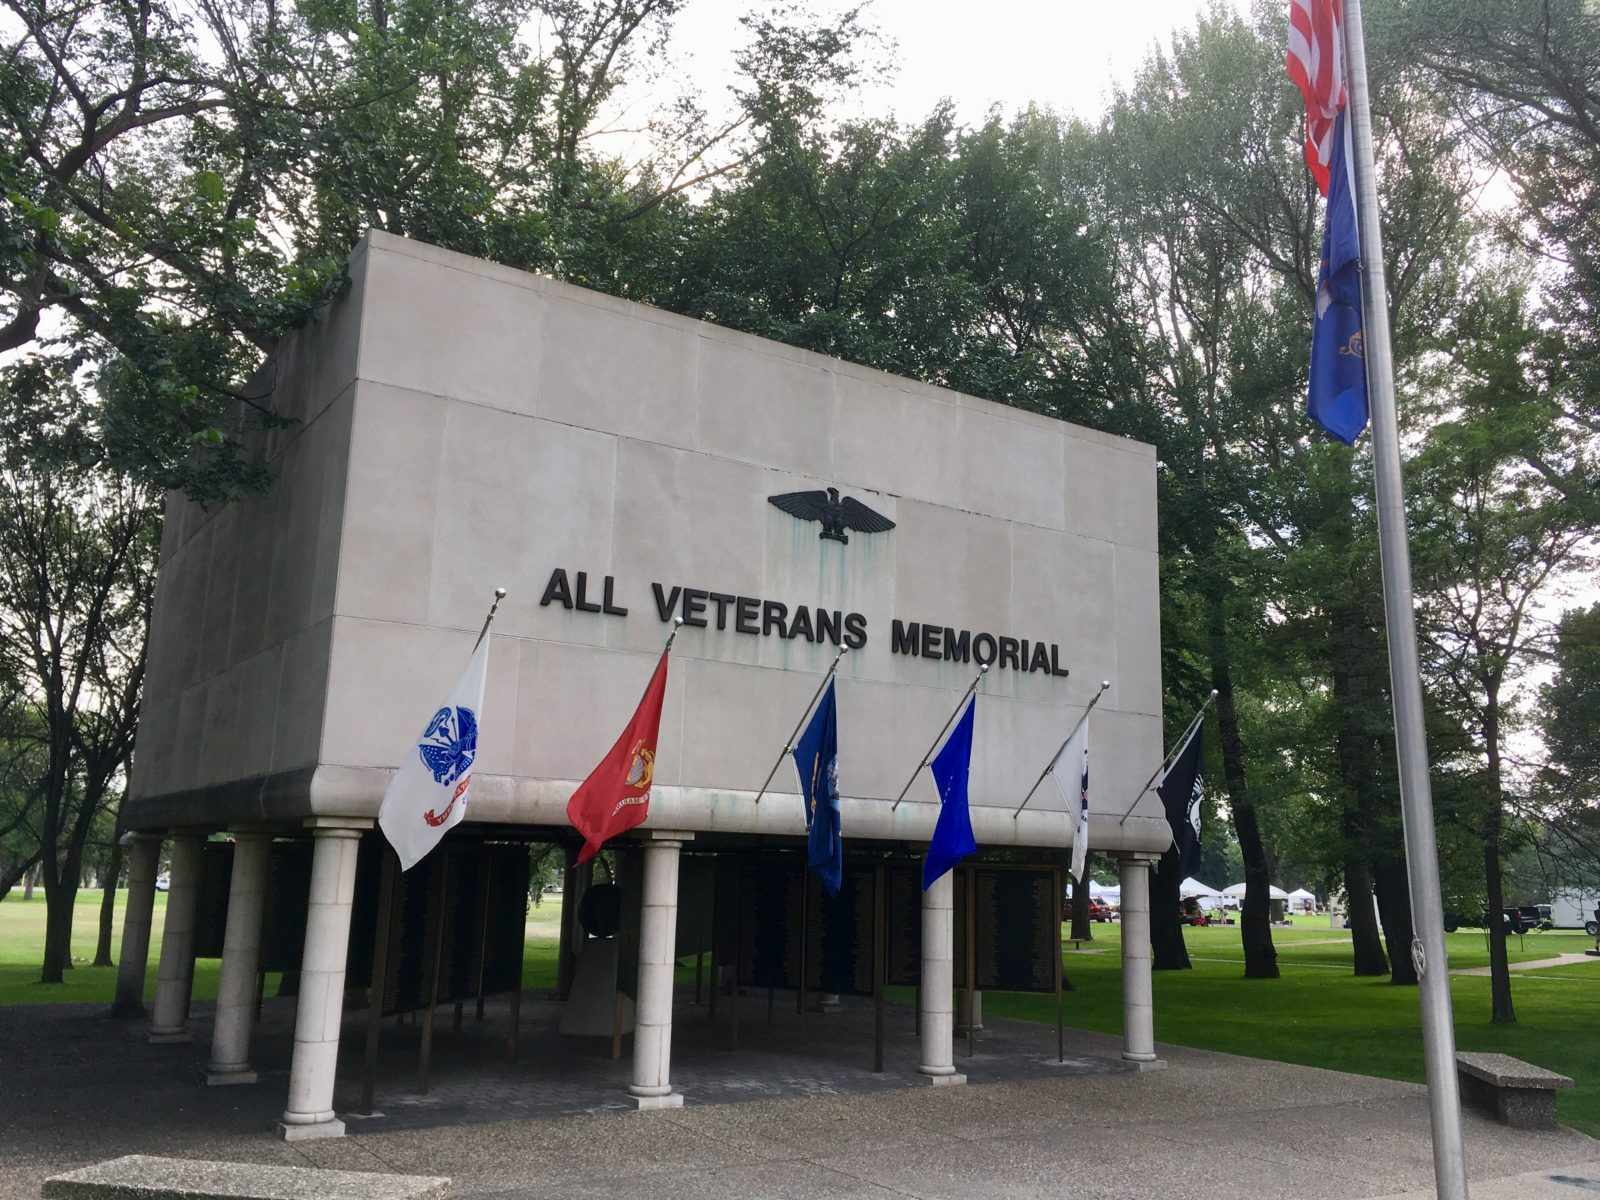 ND All Veterans Memorial